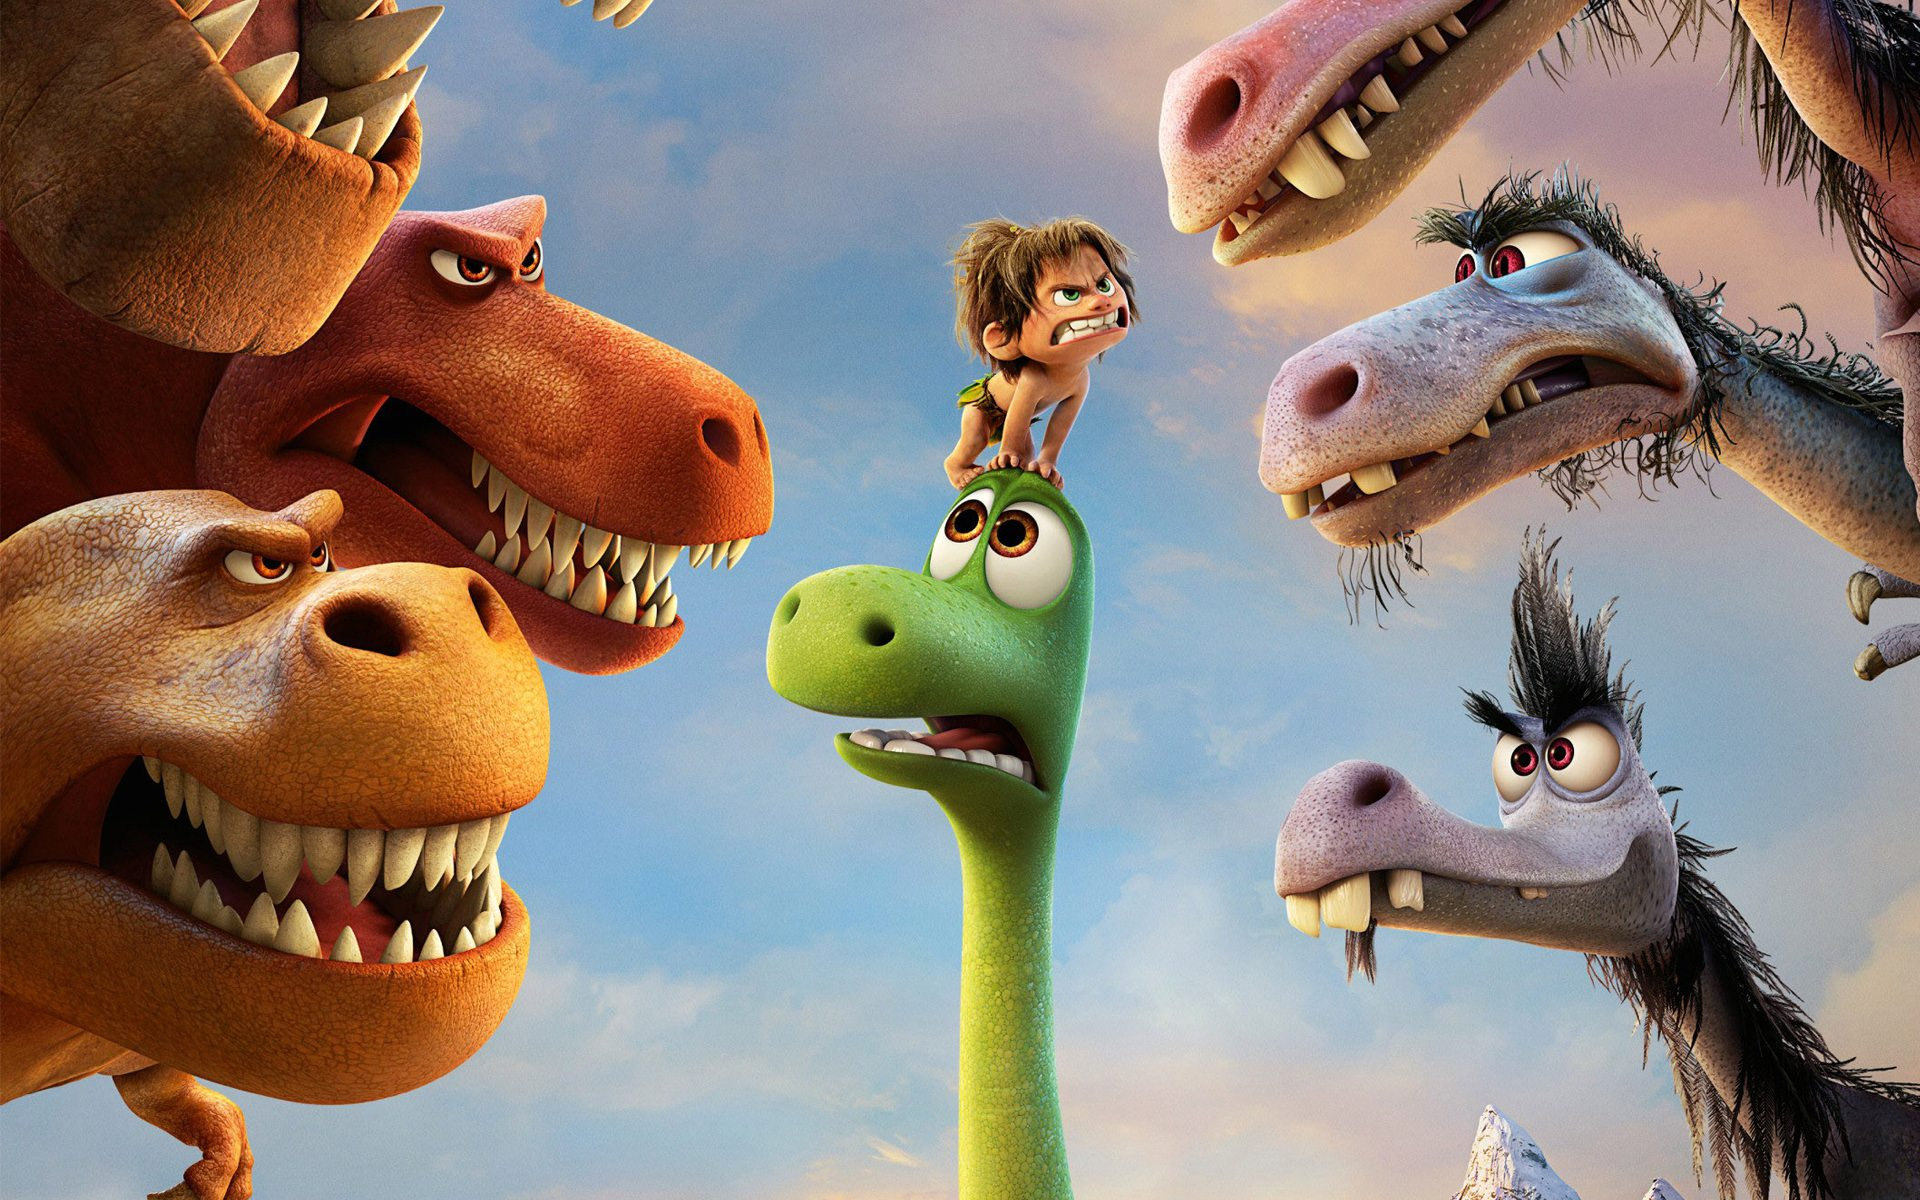 The Pixar Theory: How The Good Dinosaur Fits In Pixar's Universe